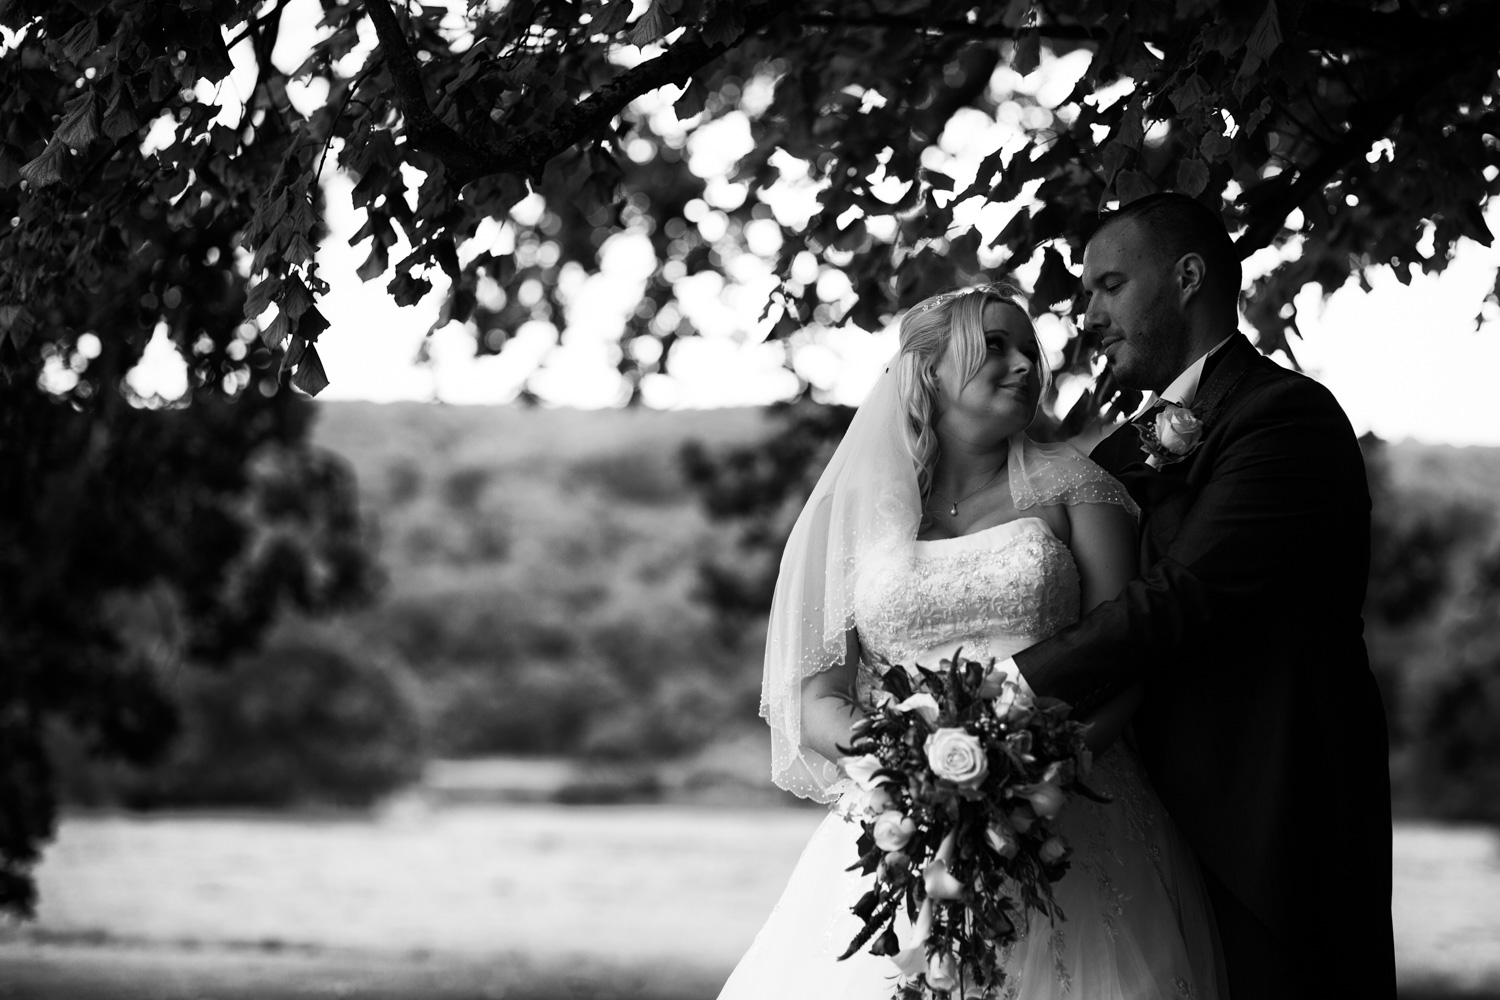 Mark_Barnes_Bristol-wedding-photography-aldwick-court-farm-and-vineyard-wedding-Photography-30.jpg